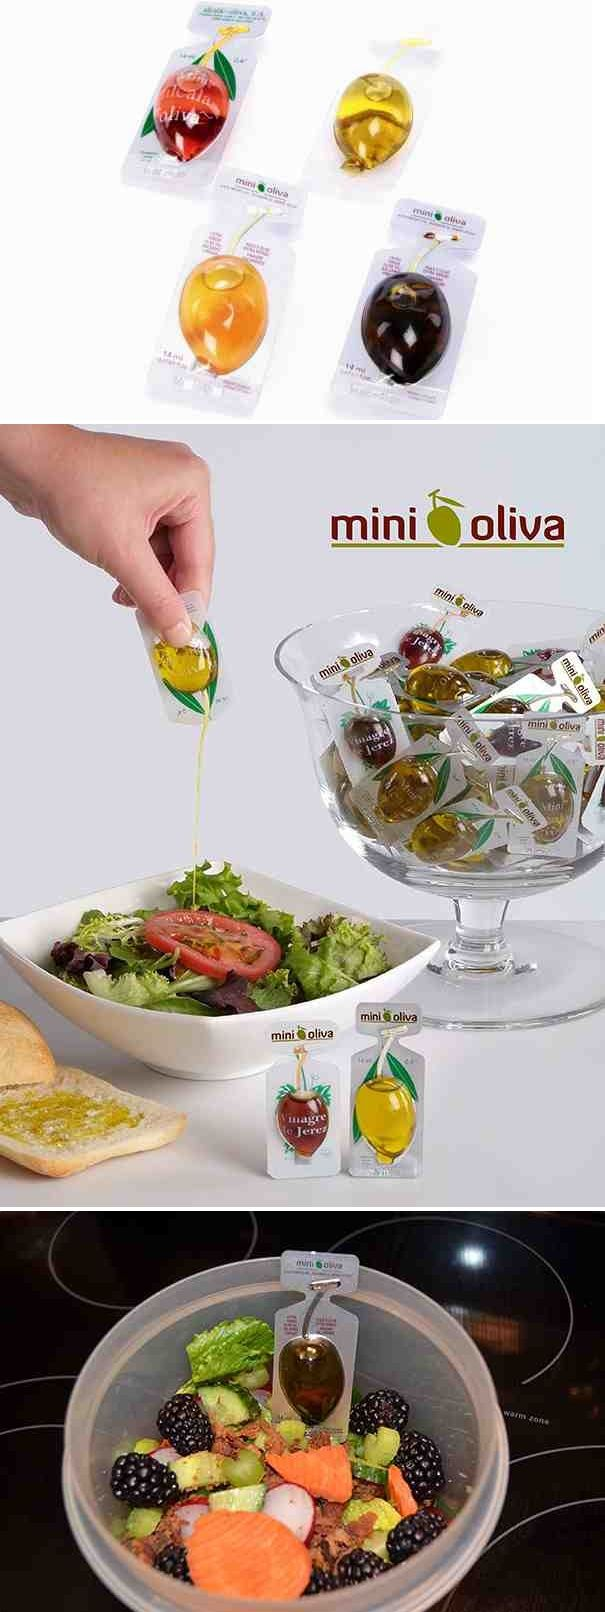 I think these are cool. I could see food places giving these out with salads. :)